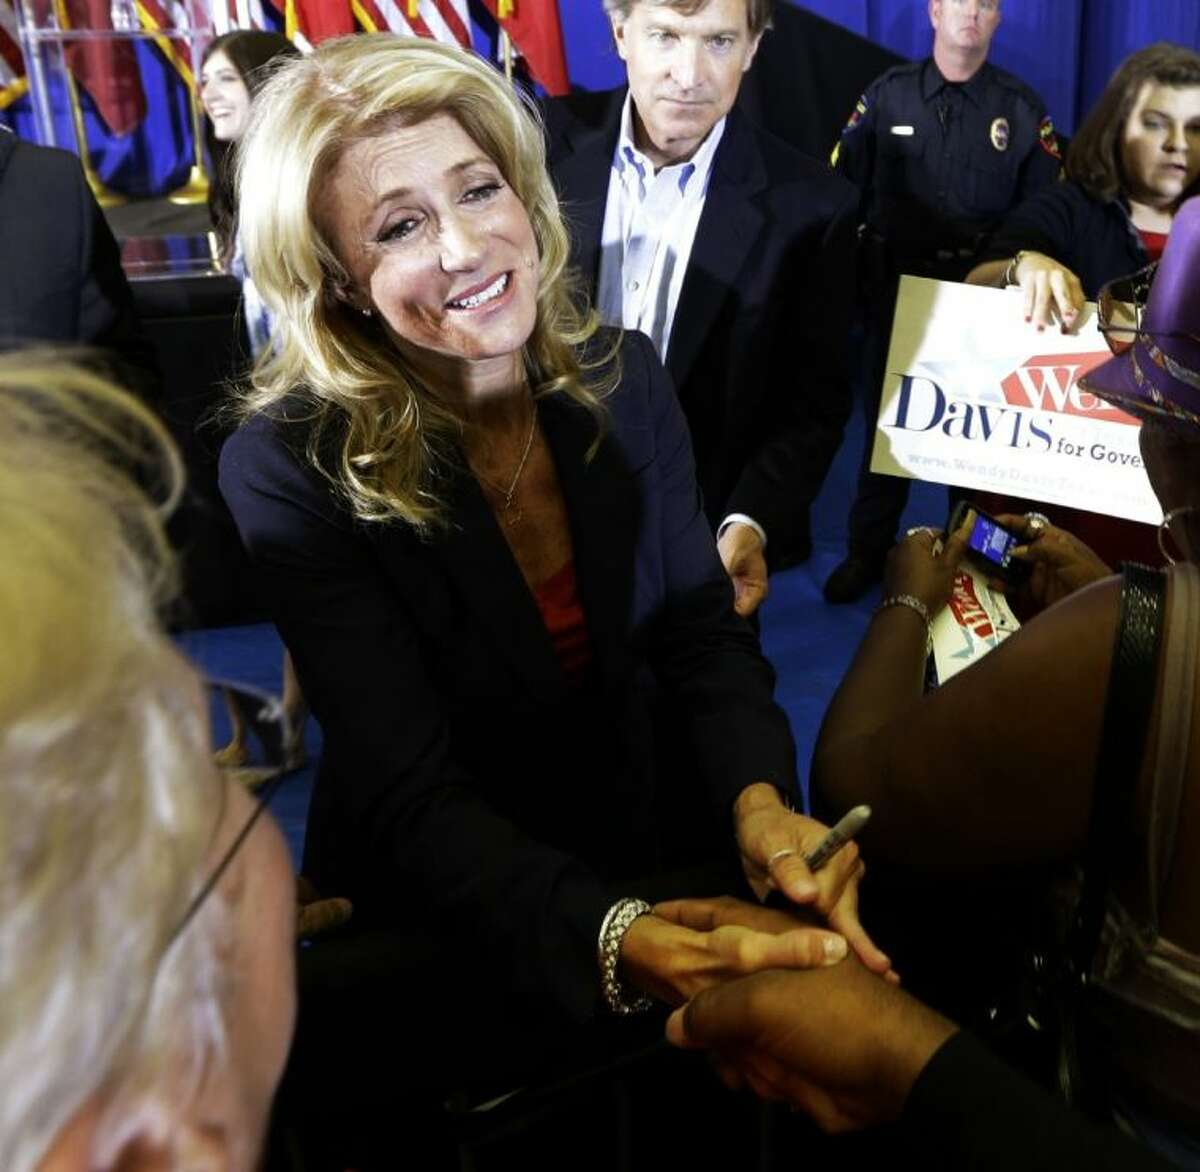 Sen. Wendy Davis, D-Fort Worth, shakes hands with a supporter after a rally Thursday in Haltom City. Davis formally announced her campaign to run for Texas governor.